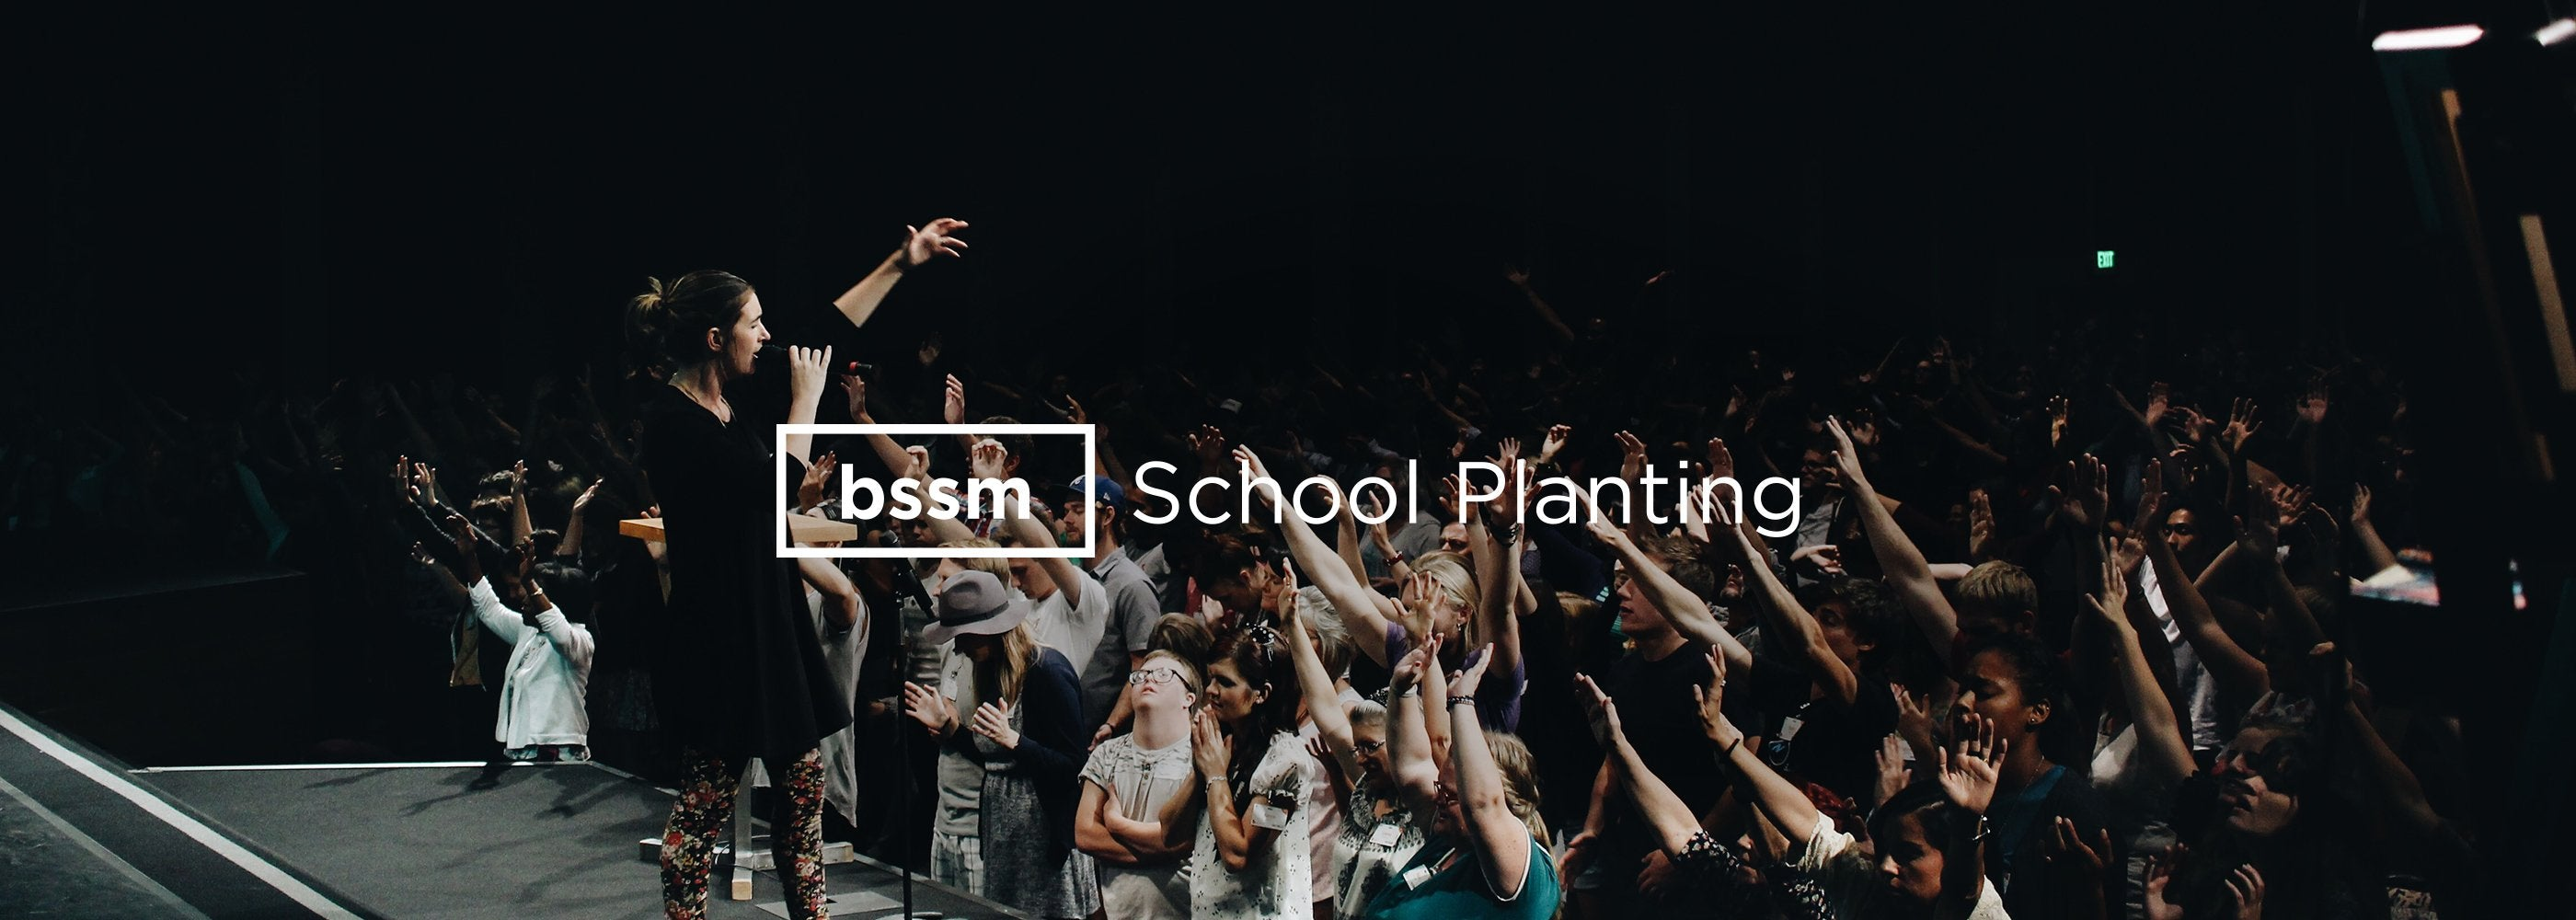 BSSM School Planting collection at Bethel Store equips school leaders to transform lives and communities through supernatural ministry.